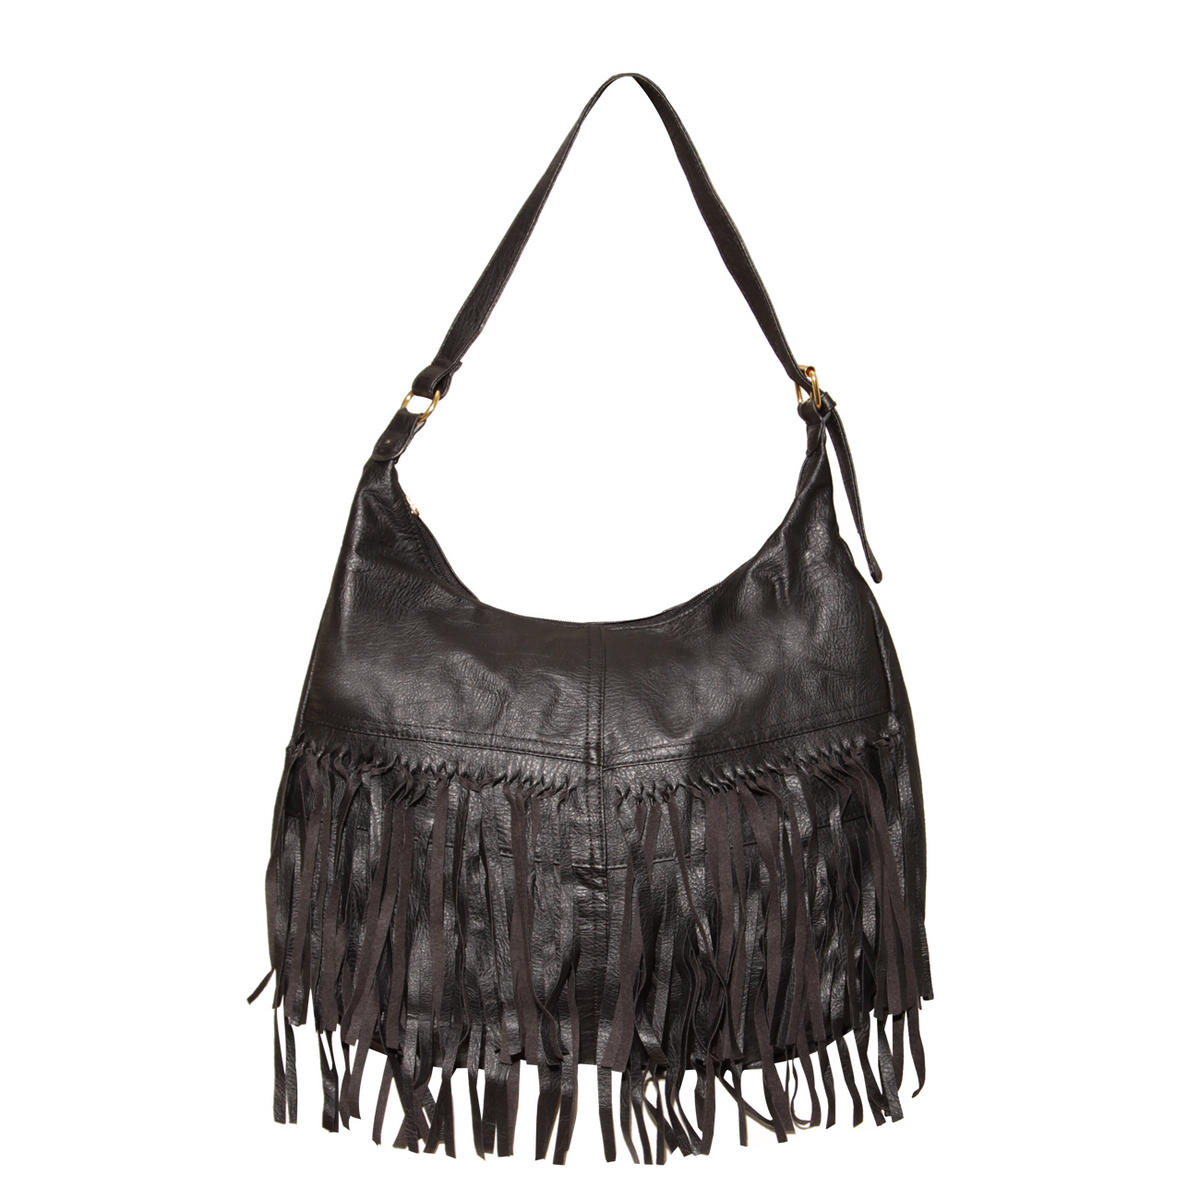 Black Fringe Handbag Preview